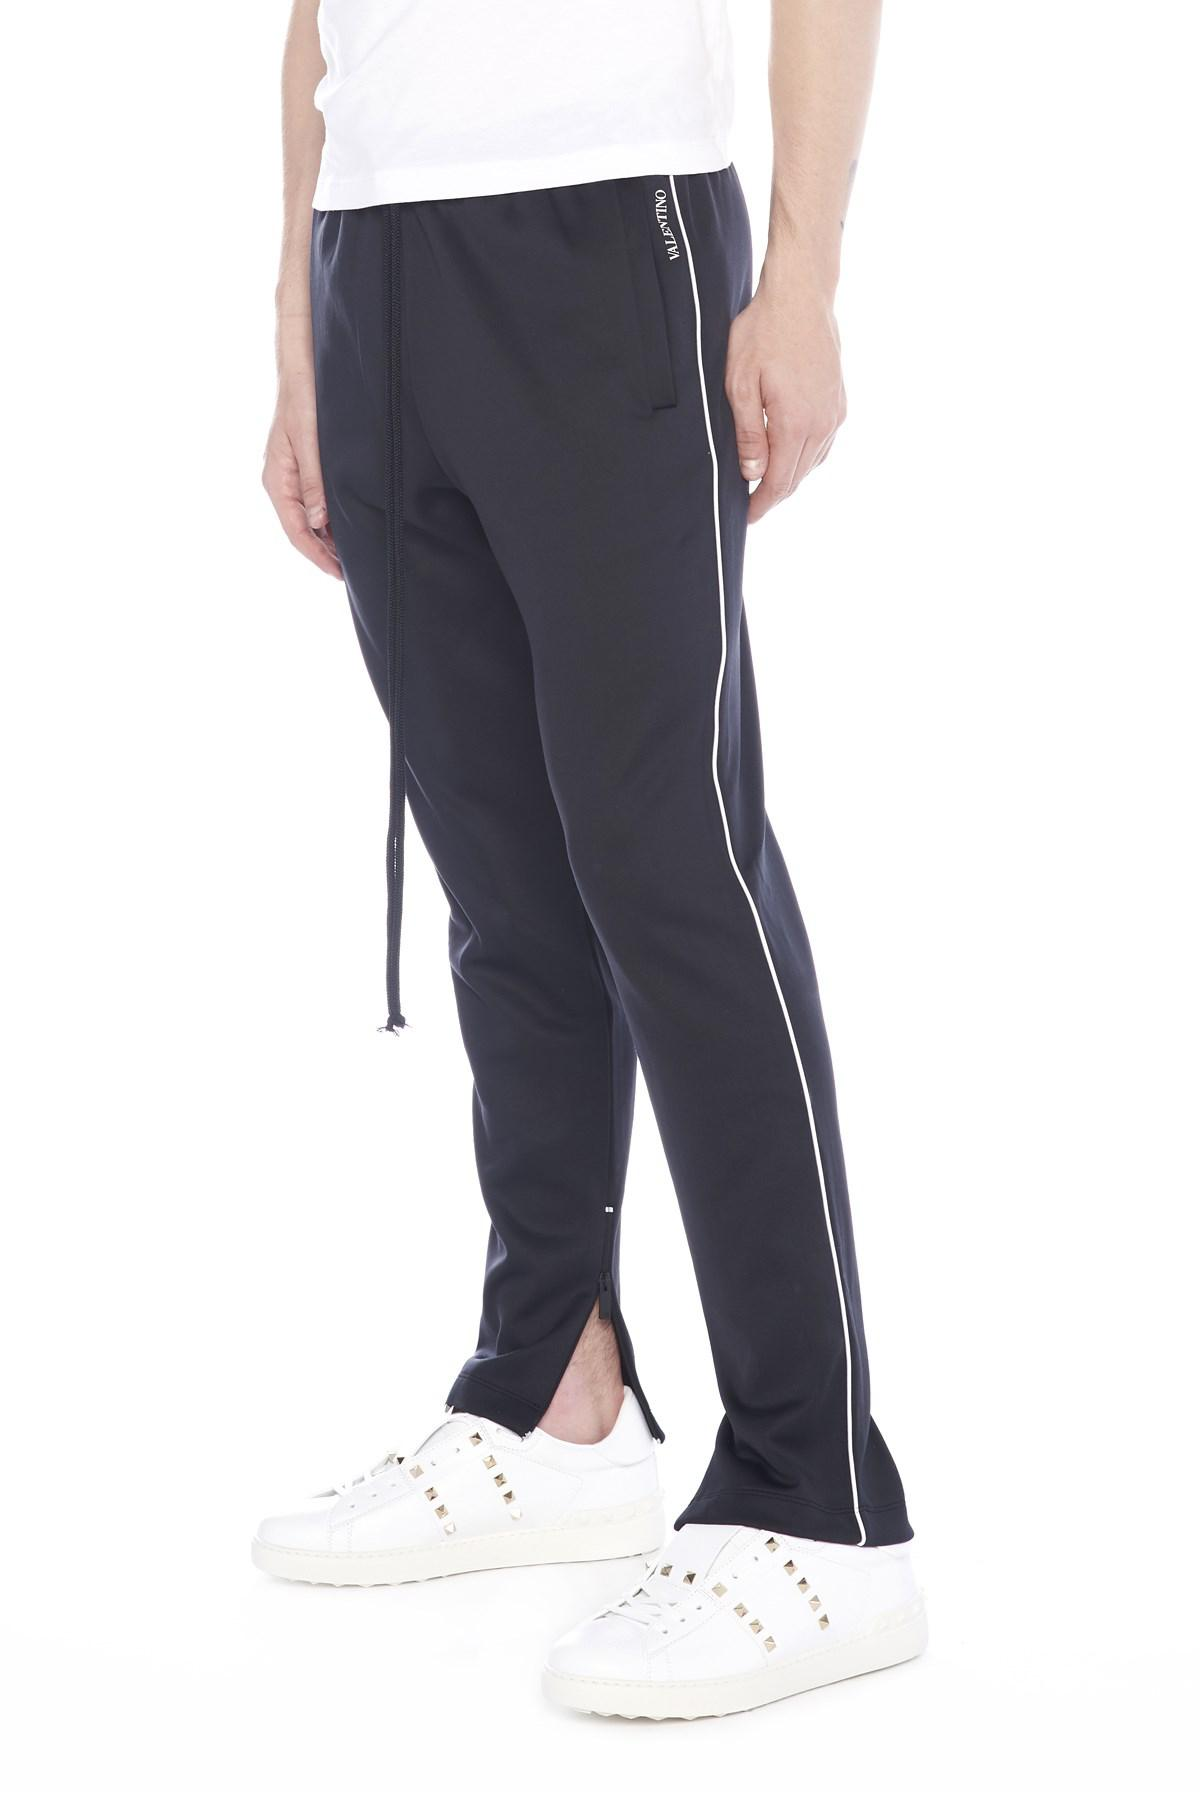 58df01679844 Lyst - Valentino Piping Sweatpants in Black for Men